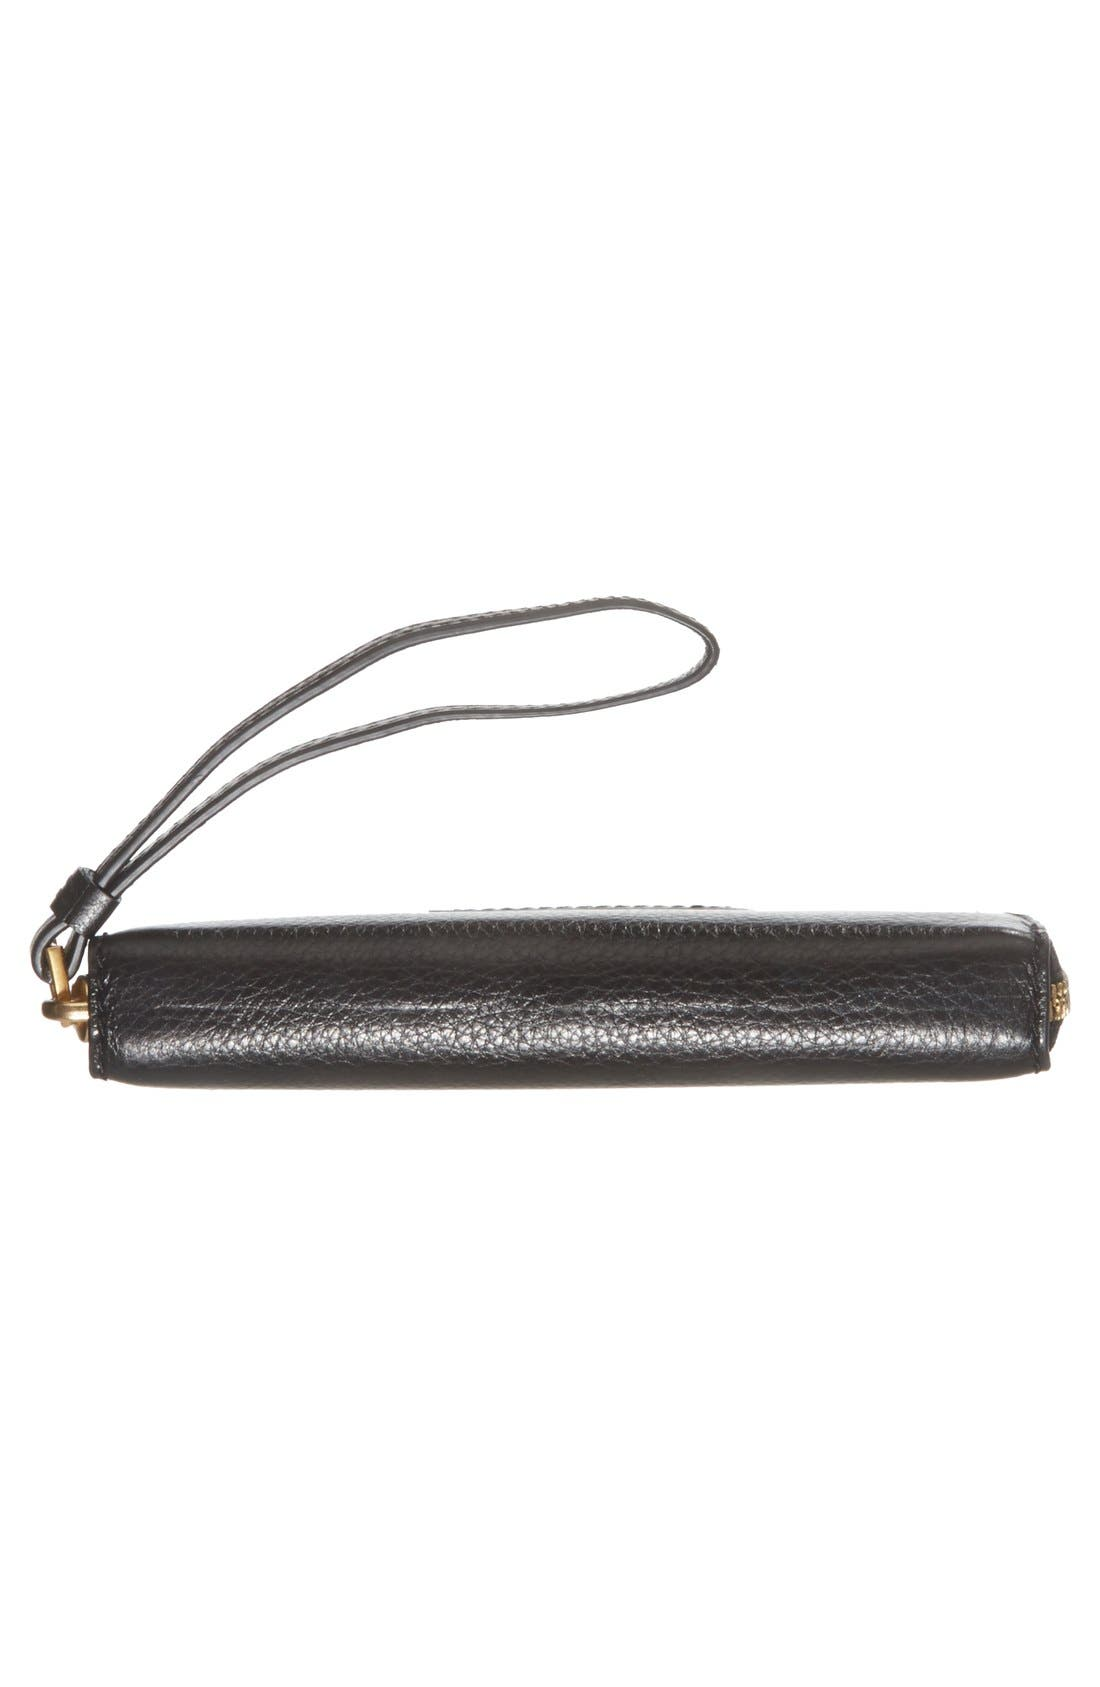 MARC JACOBS,                             MARC BY MARC JACOBS 'Too Hot To Handle - Wingman' Wallet Wristlet,                             Alternate thumbnail 4, color,                             001